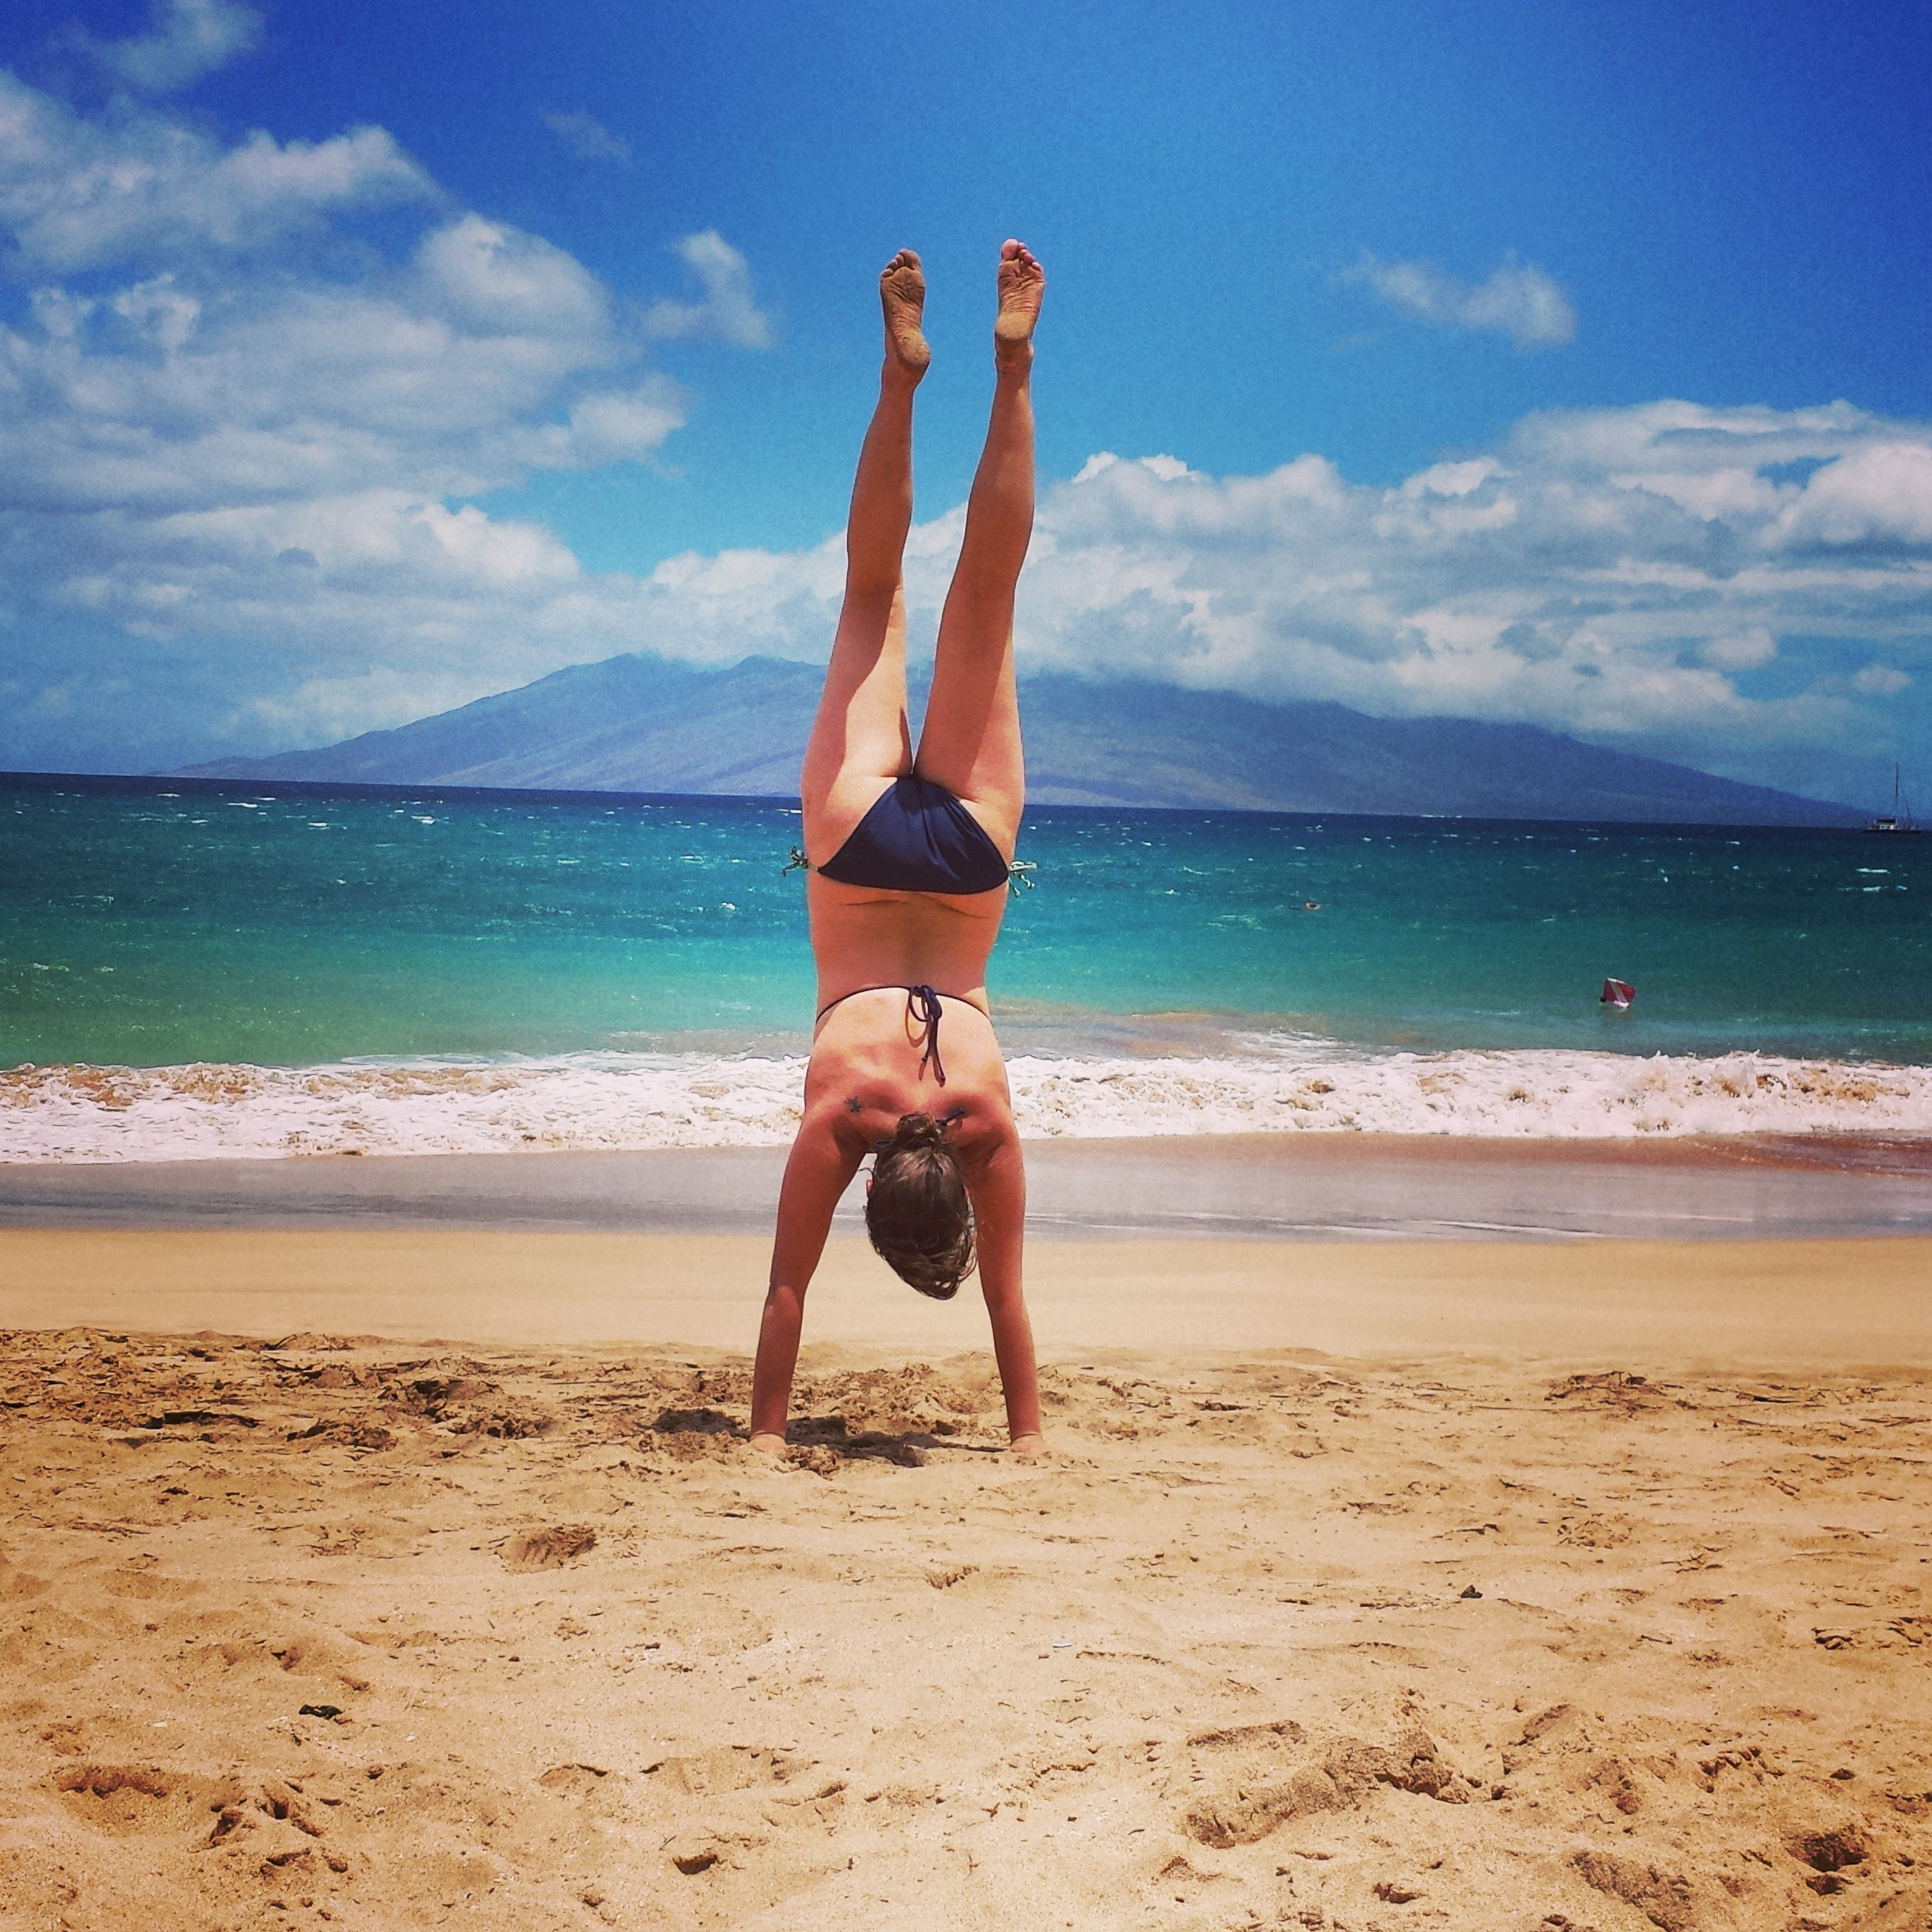 maui-beach-handstand-kelly-lane